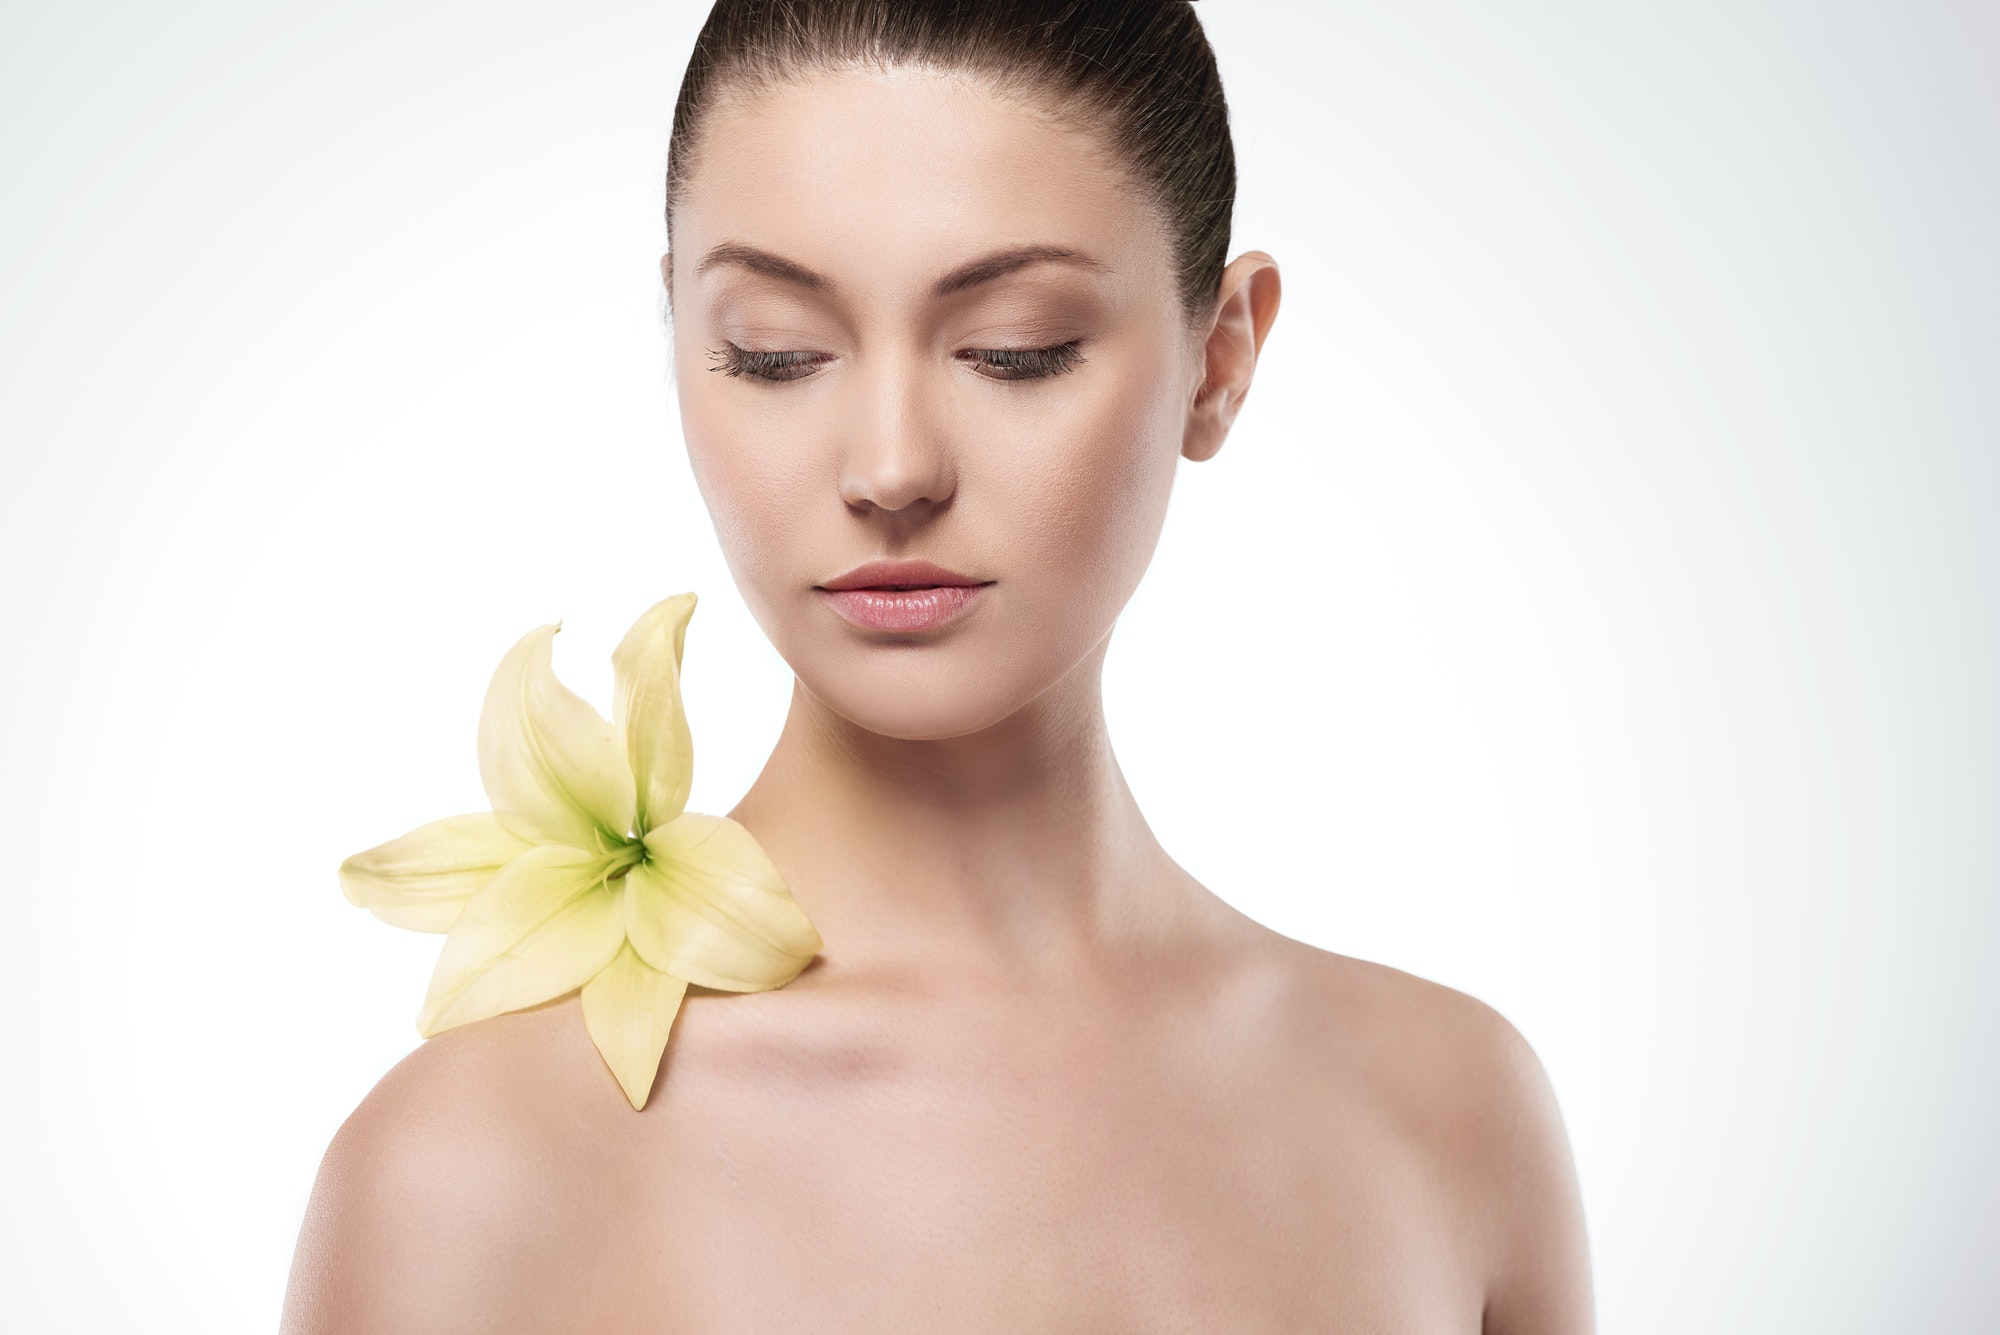 Natural beauty of woman with flower